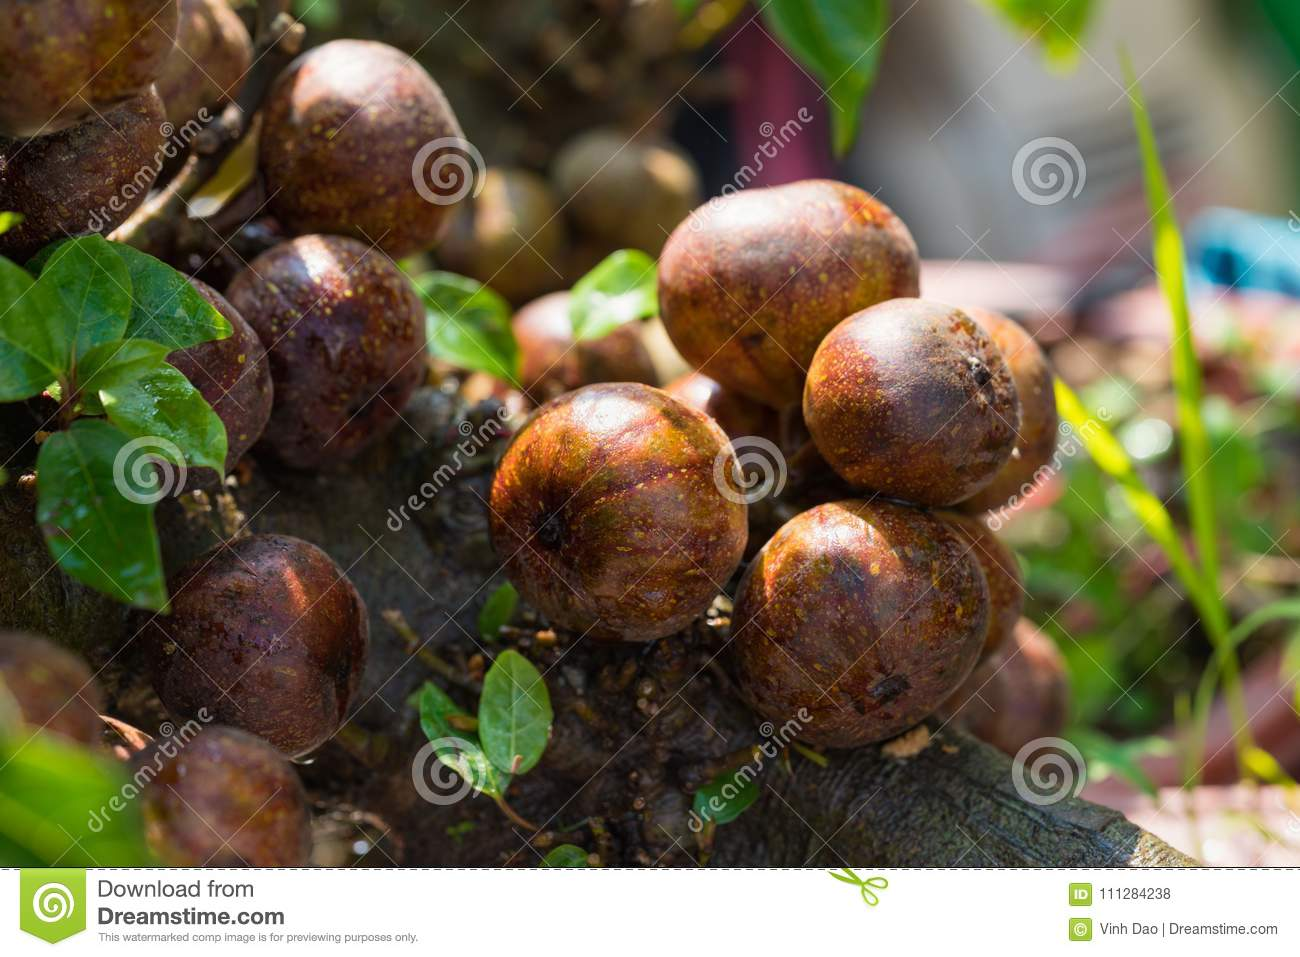 Fig fruits on tree outdoor undFig fruits on tree outdoor under sunlighter sunlight